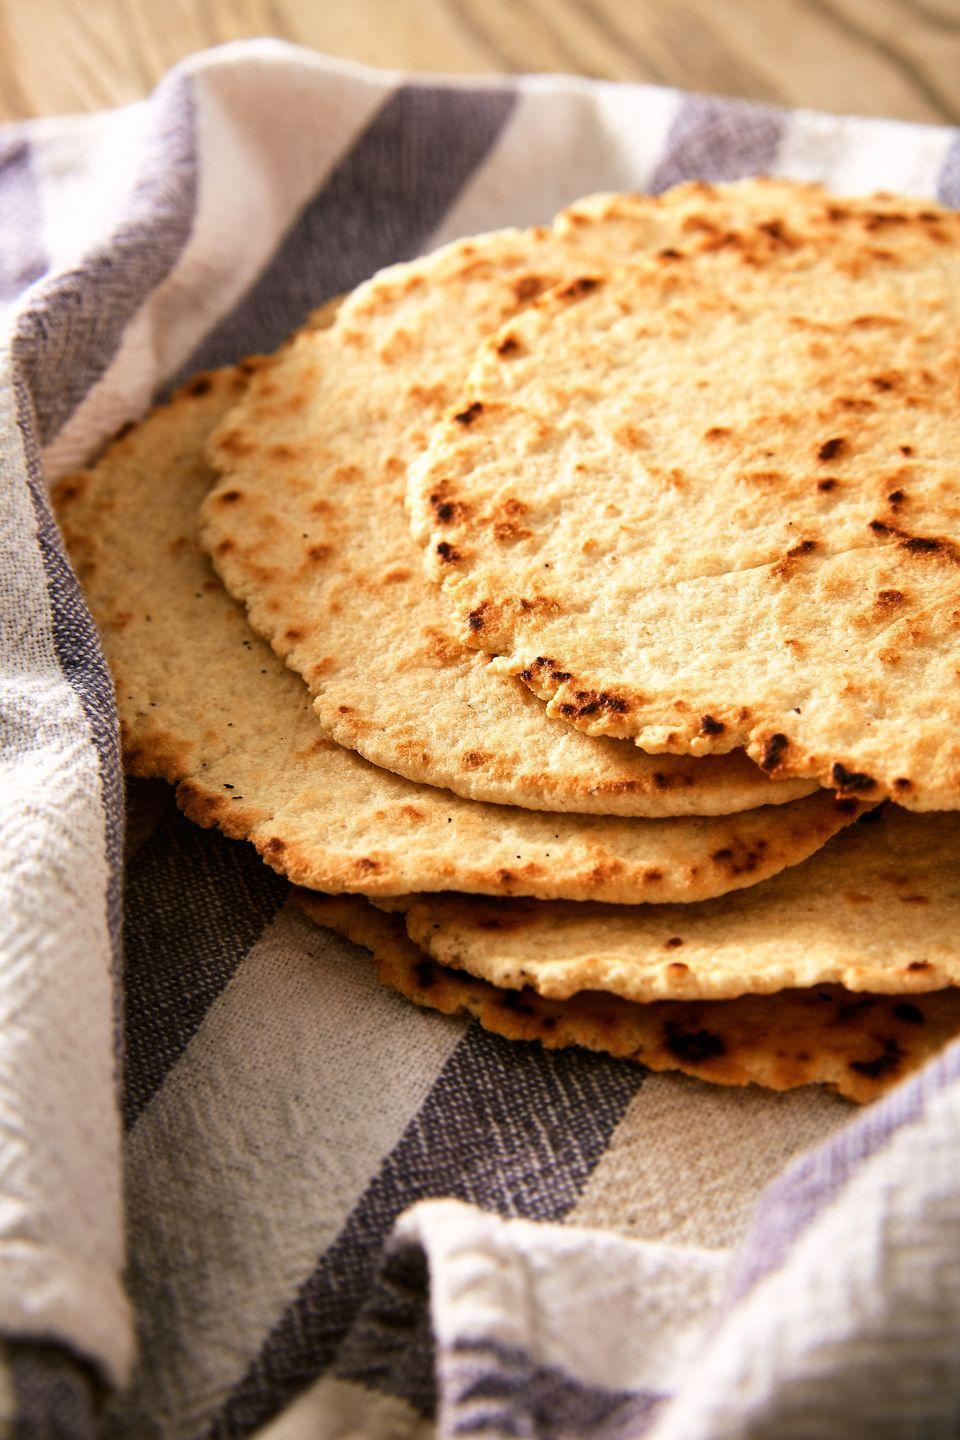 """<p>These tortillas are ready to be turned into tacos, quesadillas, enchiladas and more.</p><p>Get the recipe from <a href=""""https://www.delish.com/cooking/recipe-ideas/a25647730/keto-tortilla-recipe/"""" rel=""""nofollow noopener"""" target=""""_blank"""" data-ylk=""""slk:Delish"""" class=""""link rapid-noclick-resp"""">Delish</a>.</p>"""